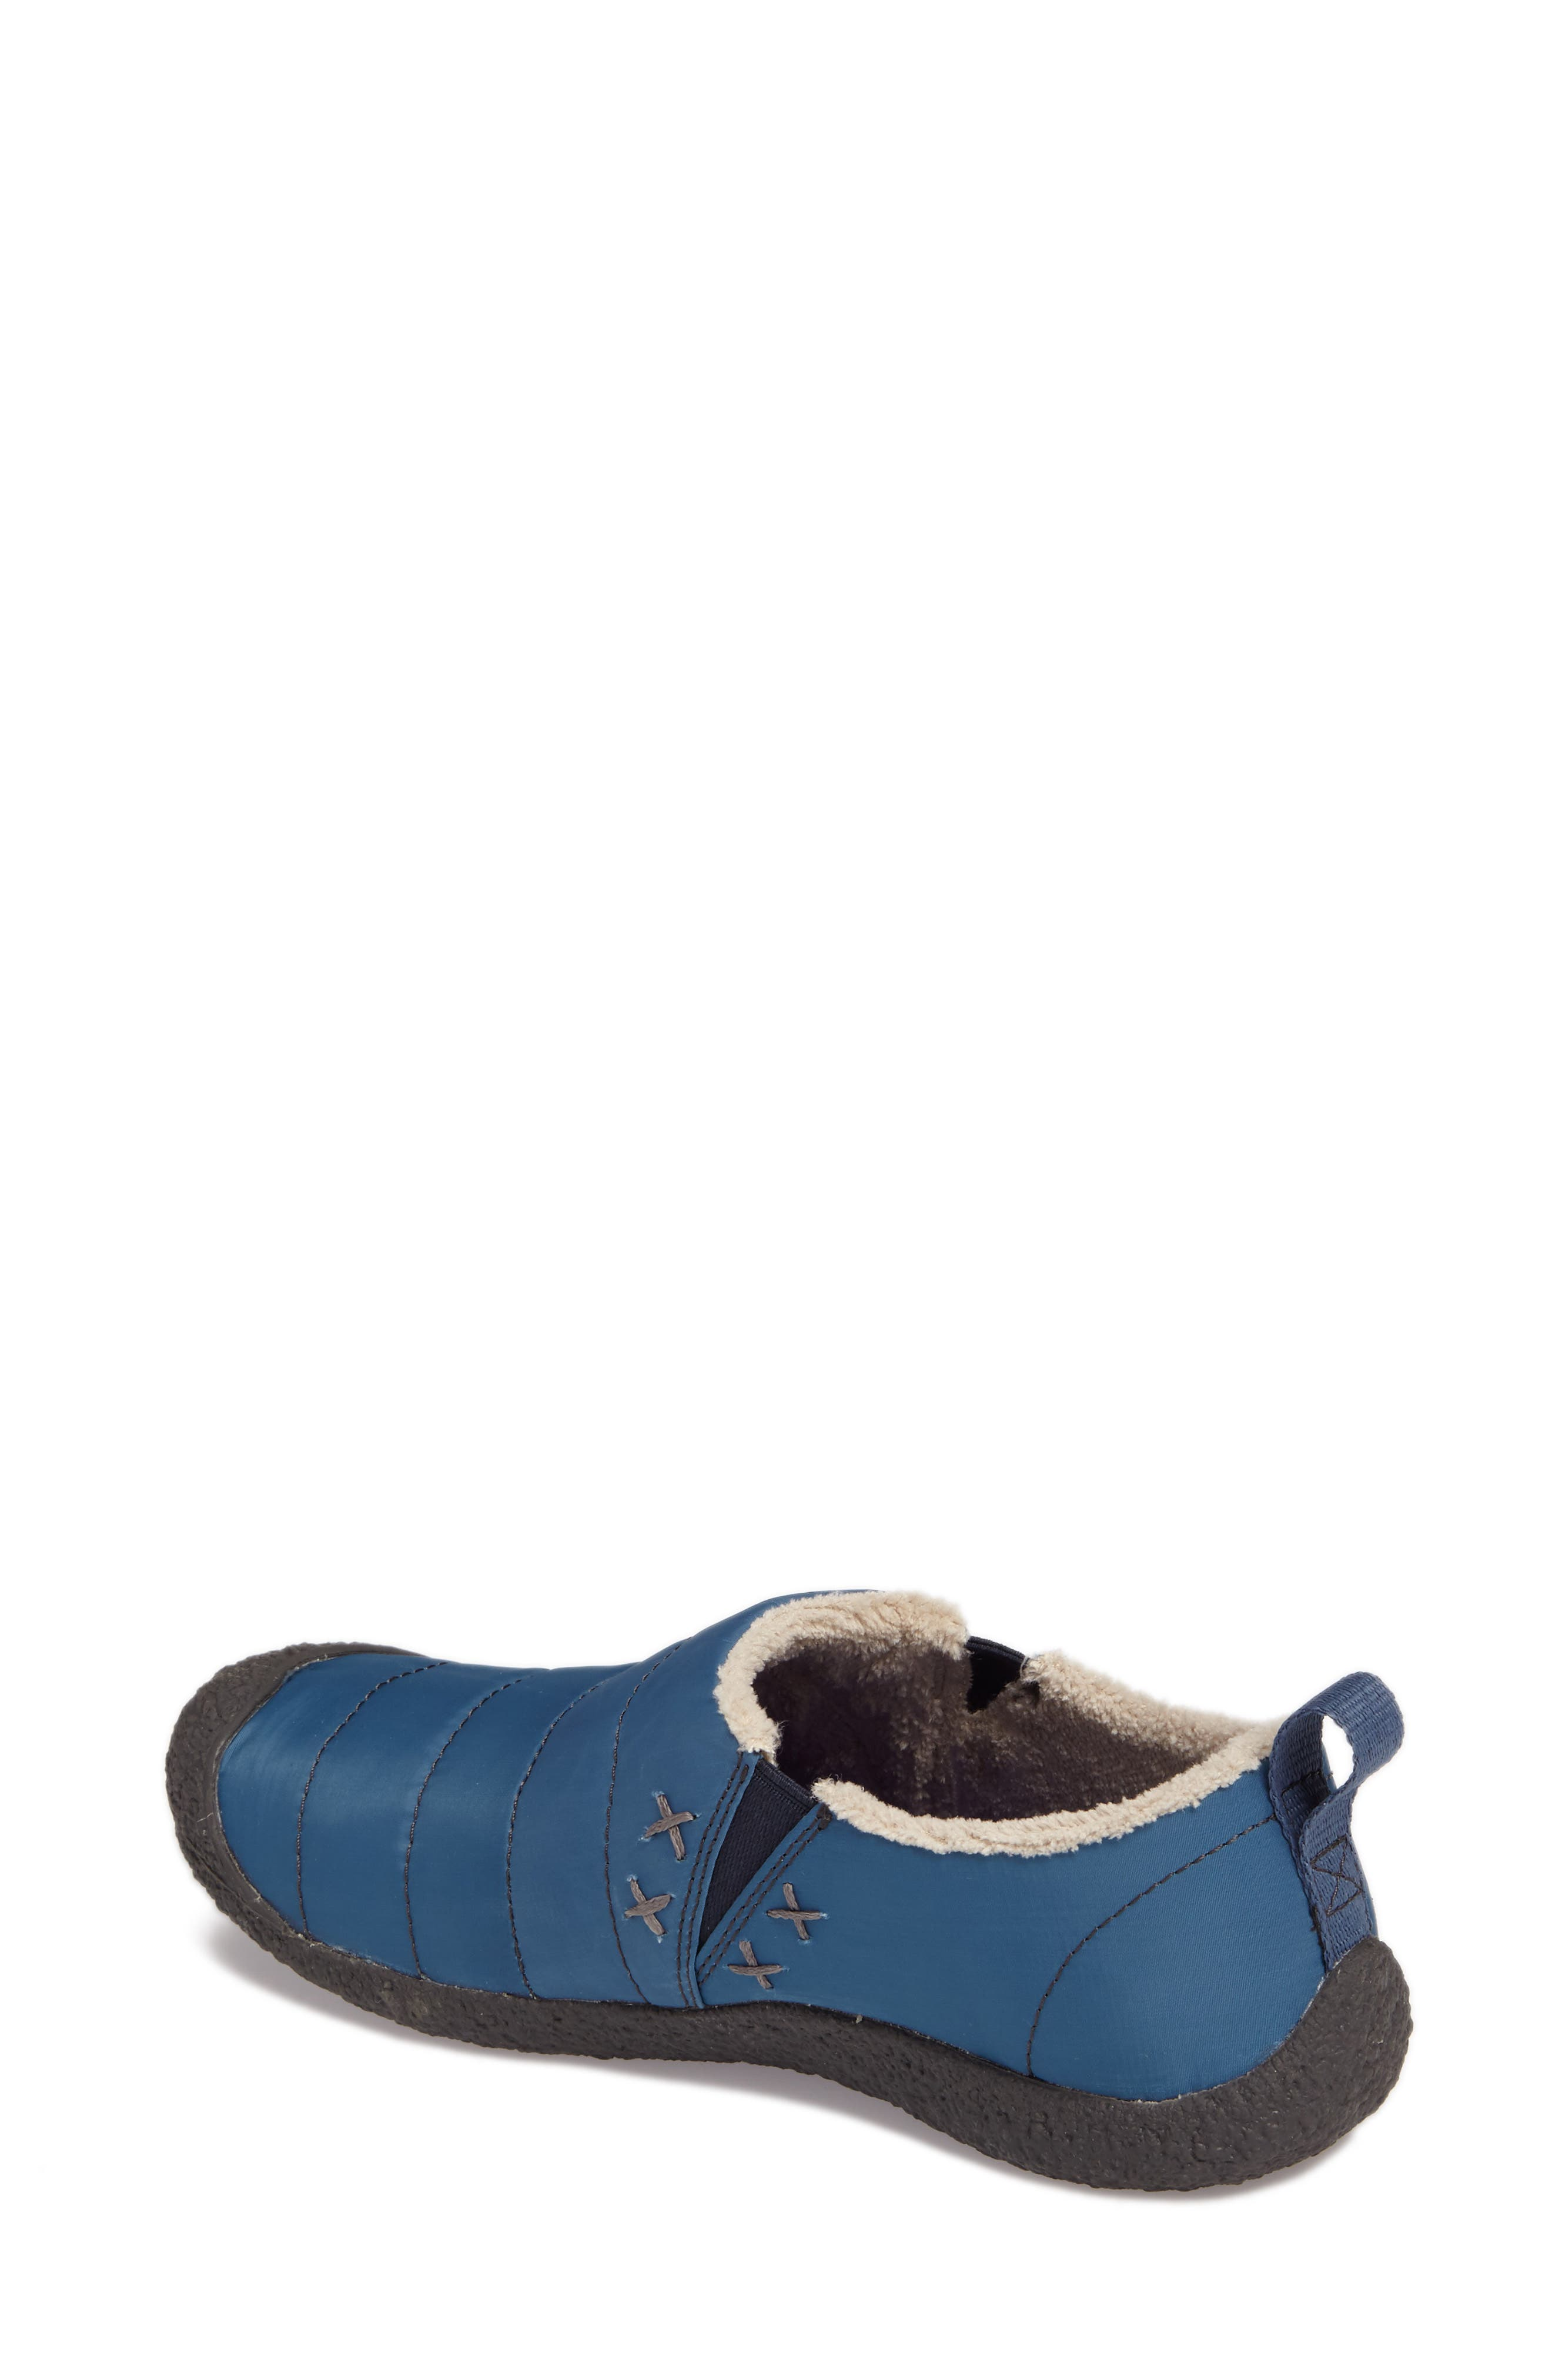 Howser II Water-Resistant Round Toe Clog,                             Alternate thumbnail 2, color,                             400